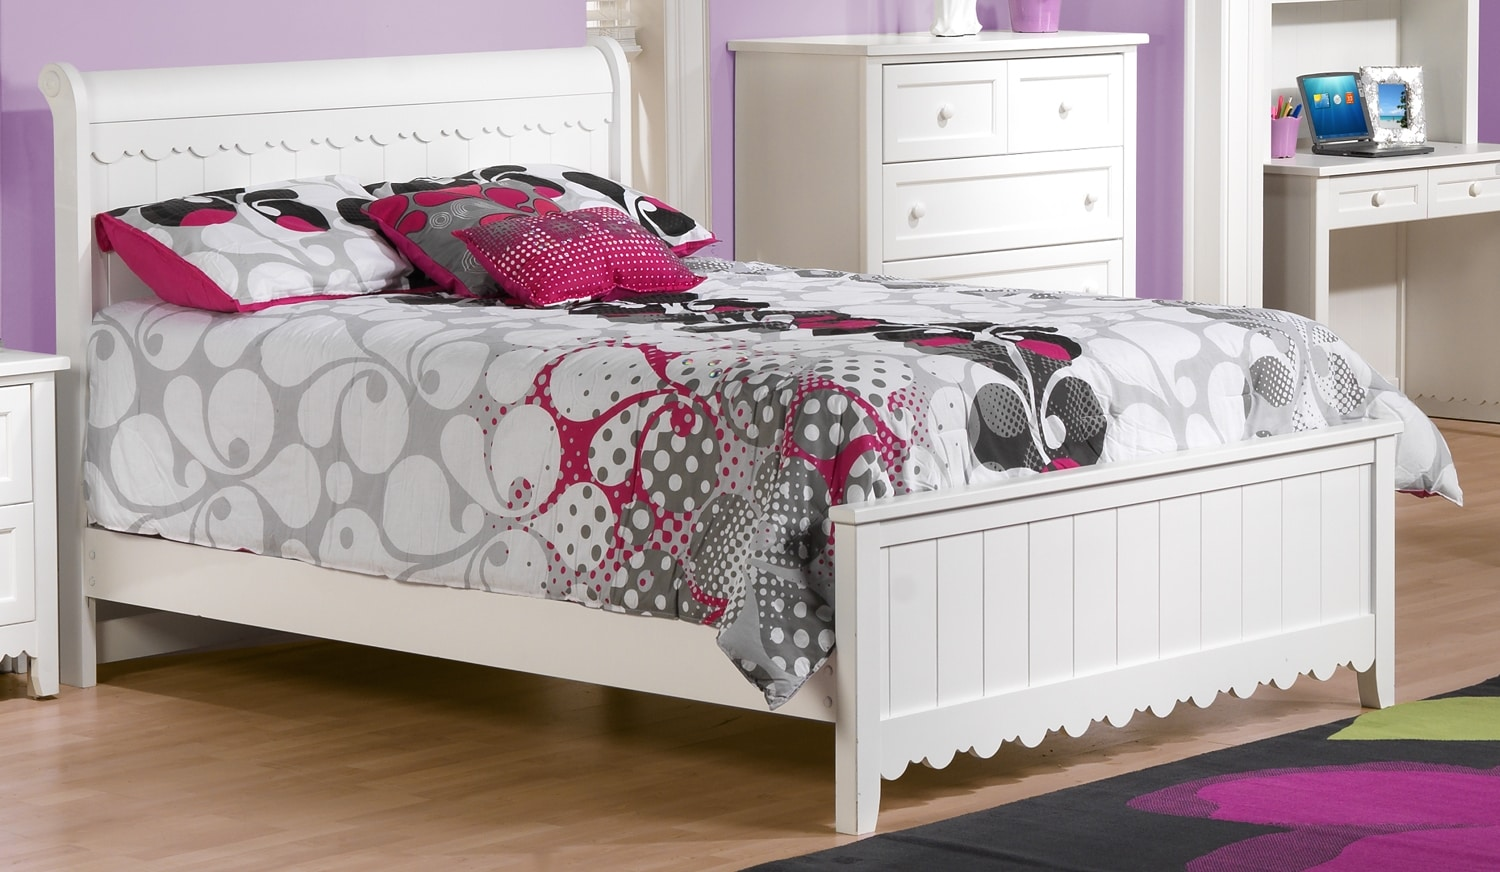 Sweetdreams Twin Bed White Leon S